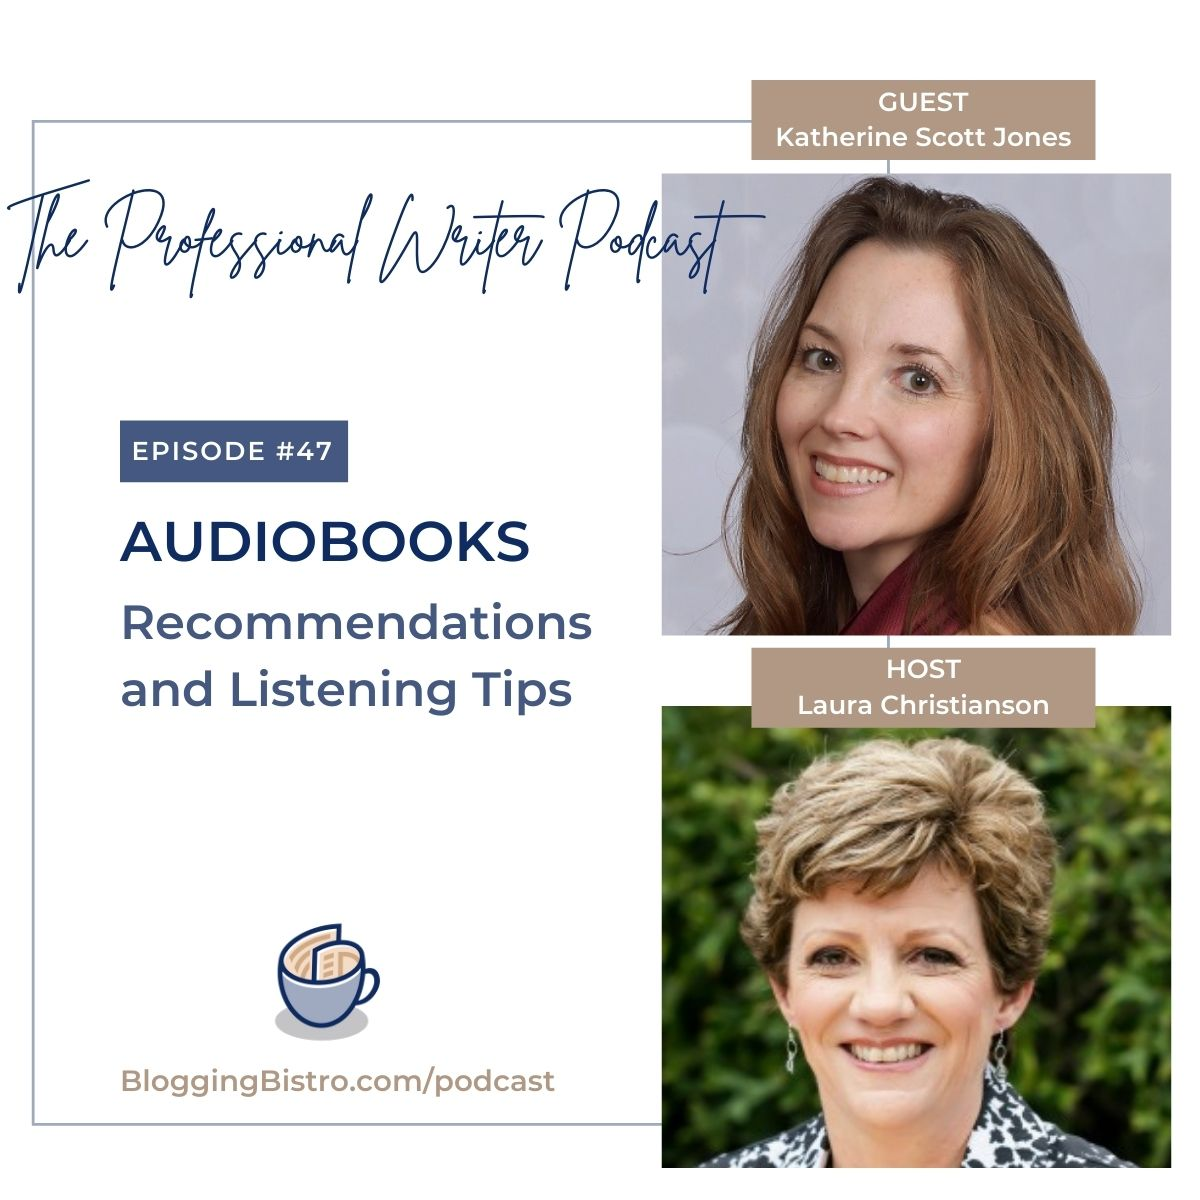 Audiobook Recommendations and Listening Tips, With Katherine Scott Jones   Episode 47 of The Professional Writer Podcast with Laura Christianson   BloggingBistro.com